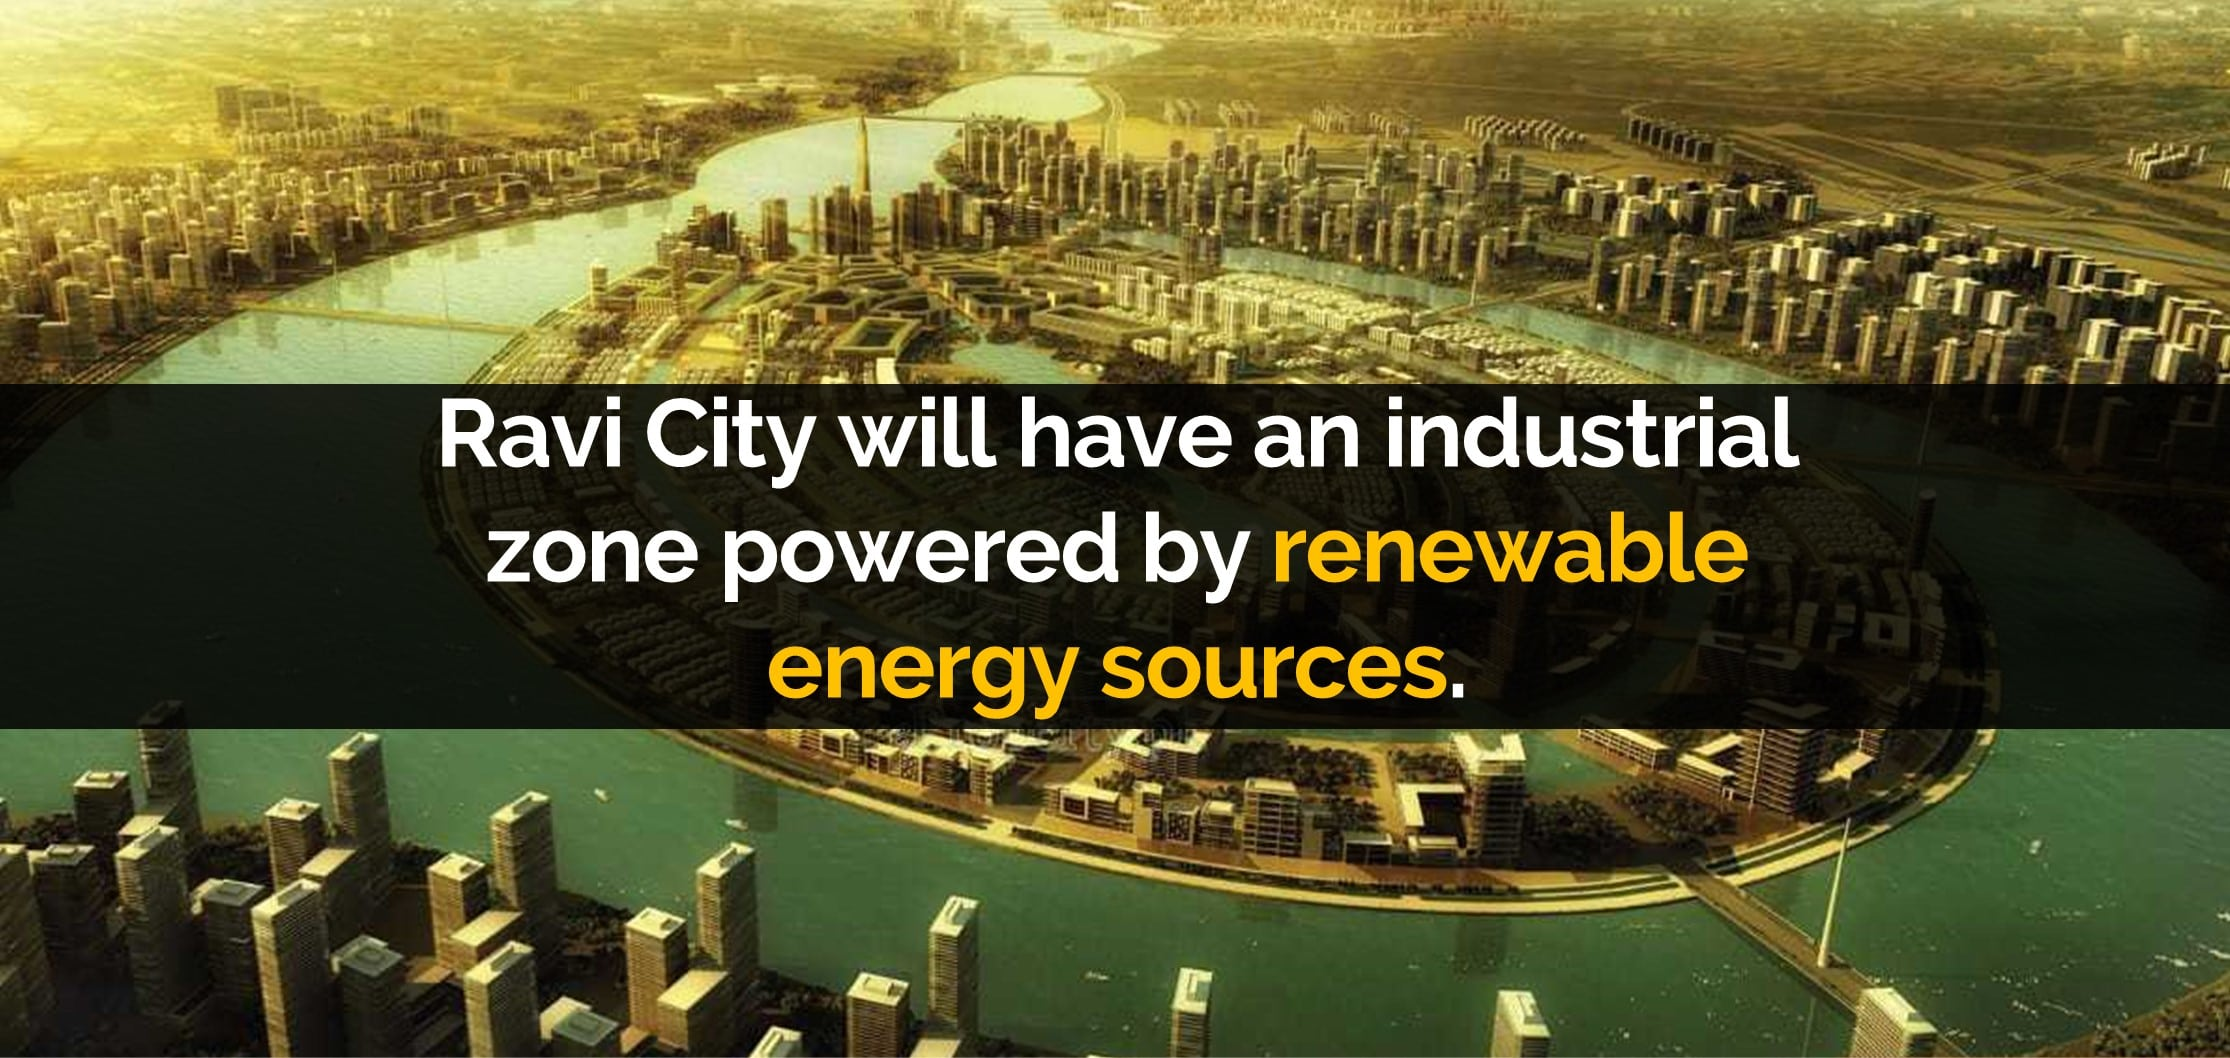 Ravi city will have an industrial zone powered by renewable energy sources